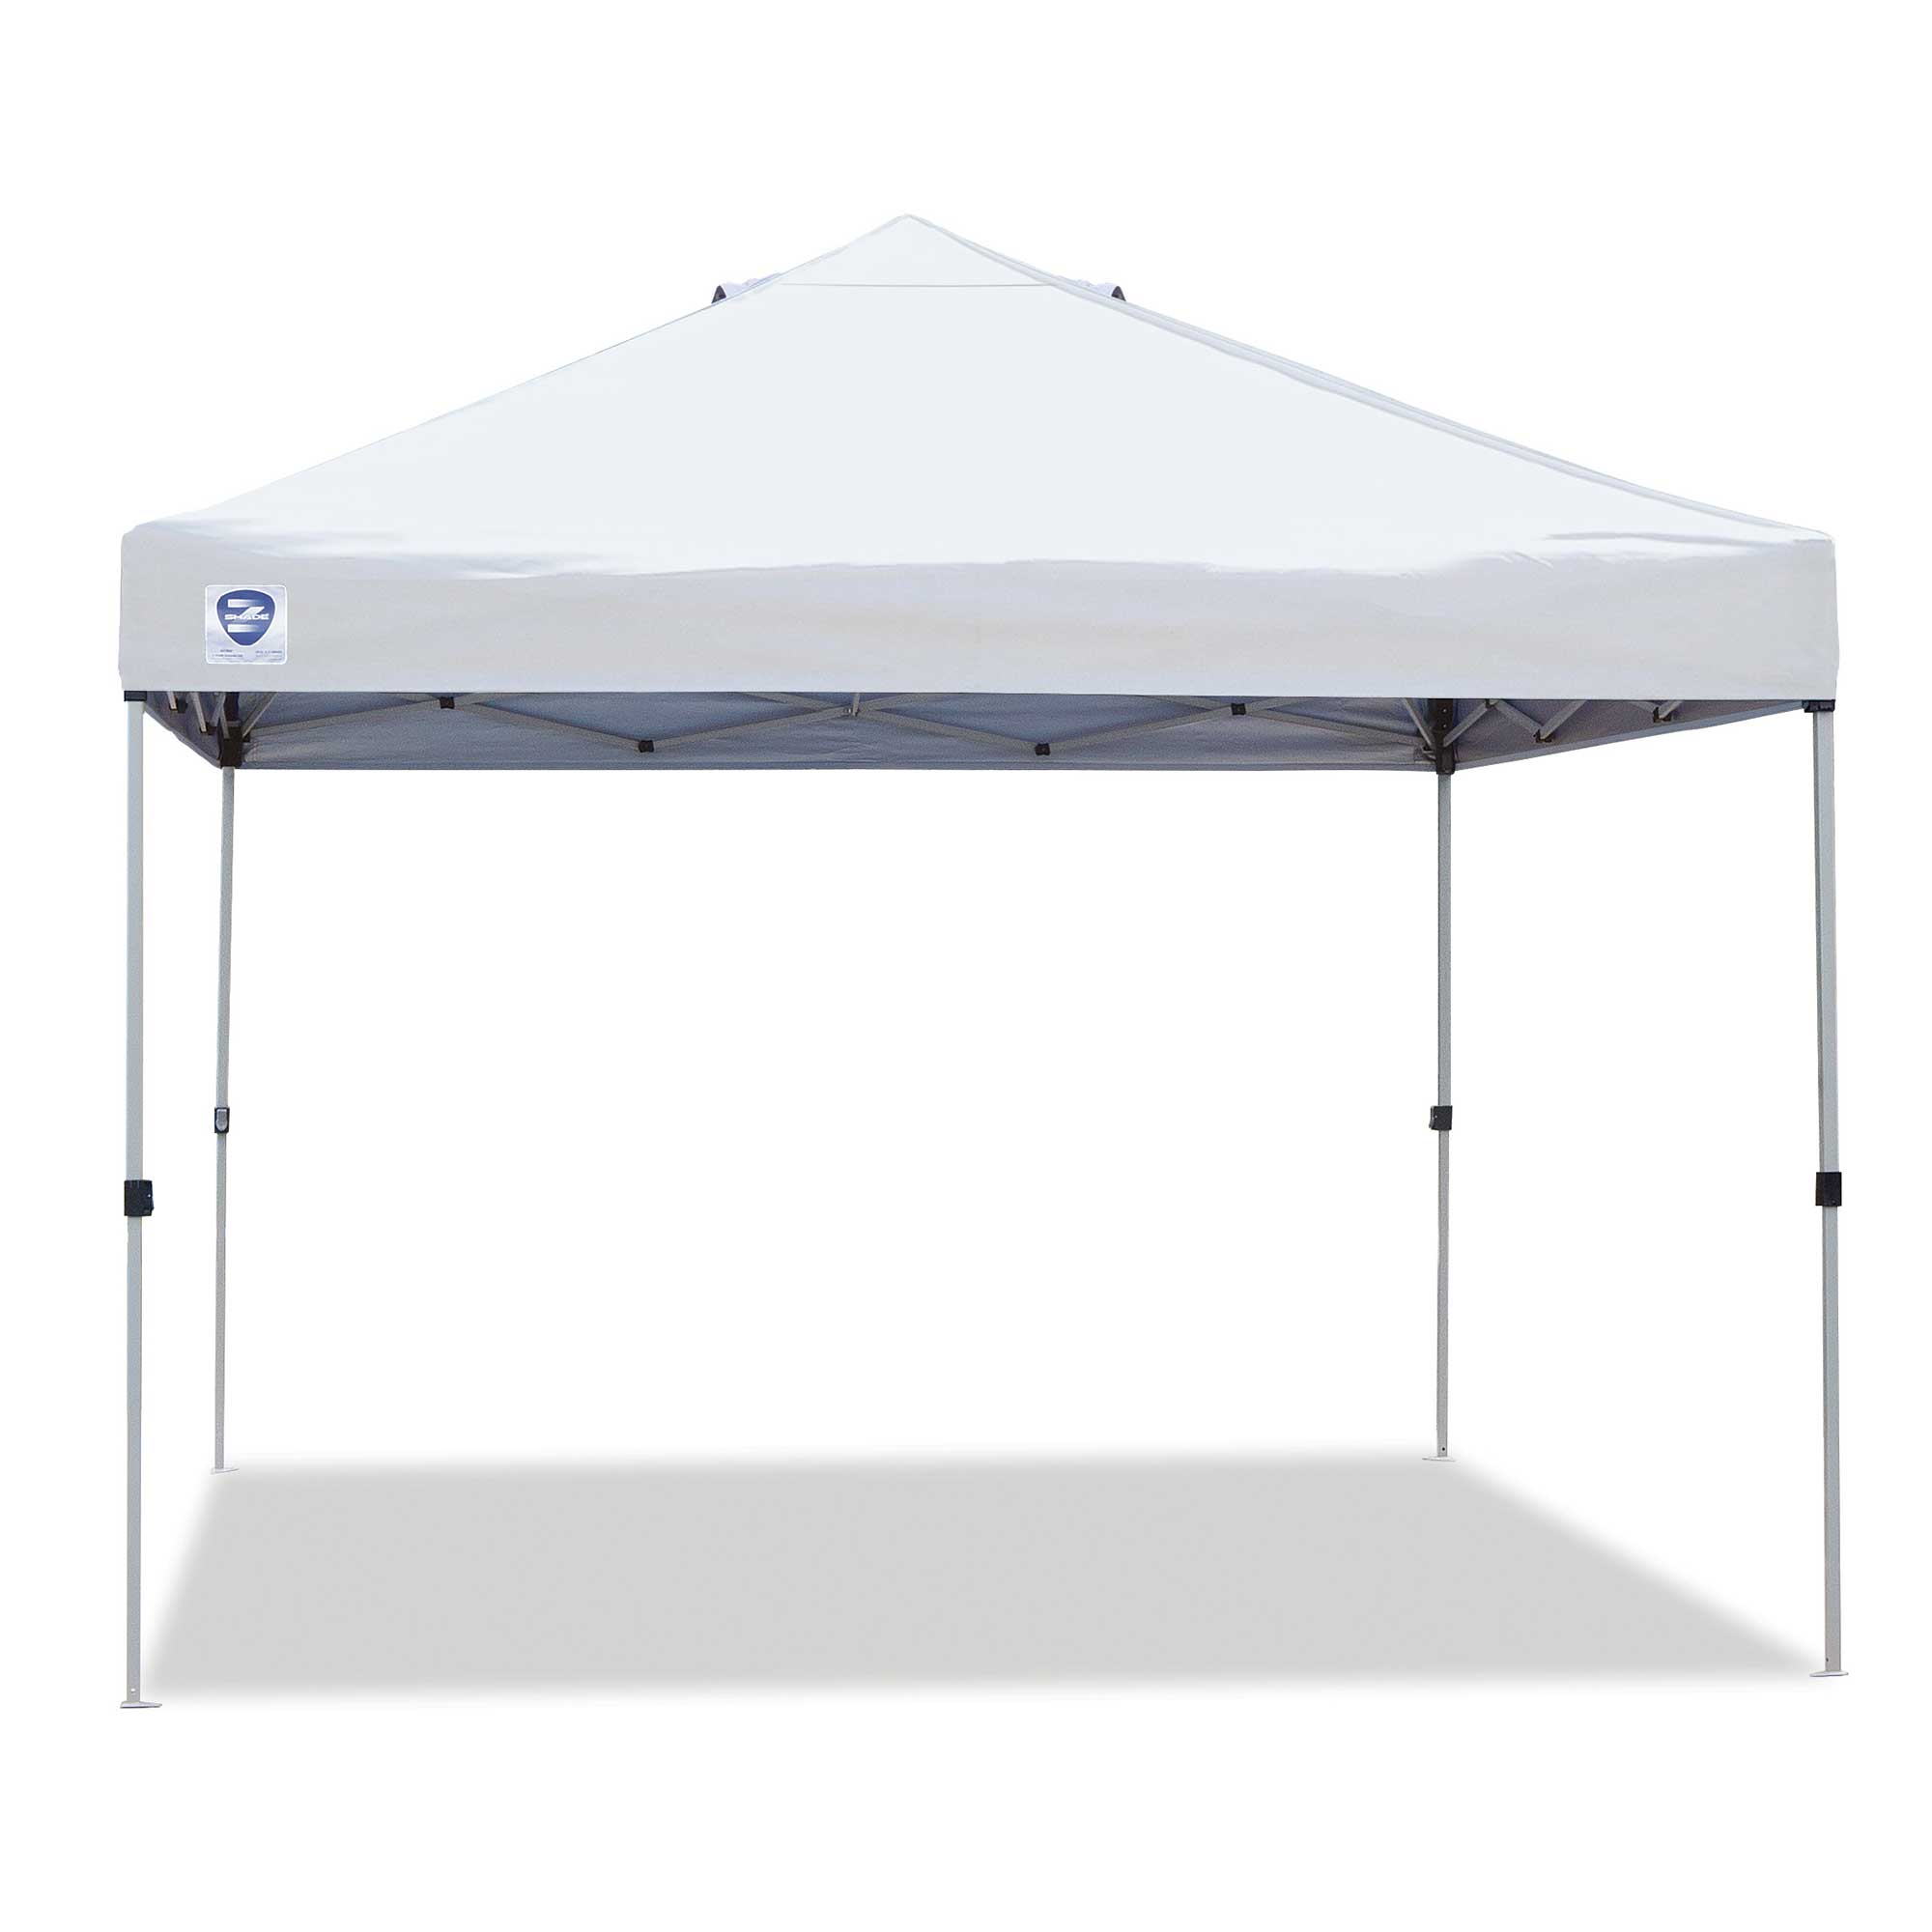 Z-Shade 10' x 10' Peak Canopy Straight Leg Instant Shade Tent Portable Shelter by Z-Shade